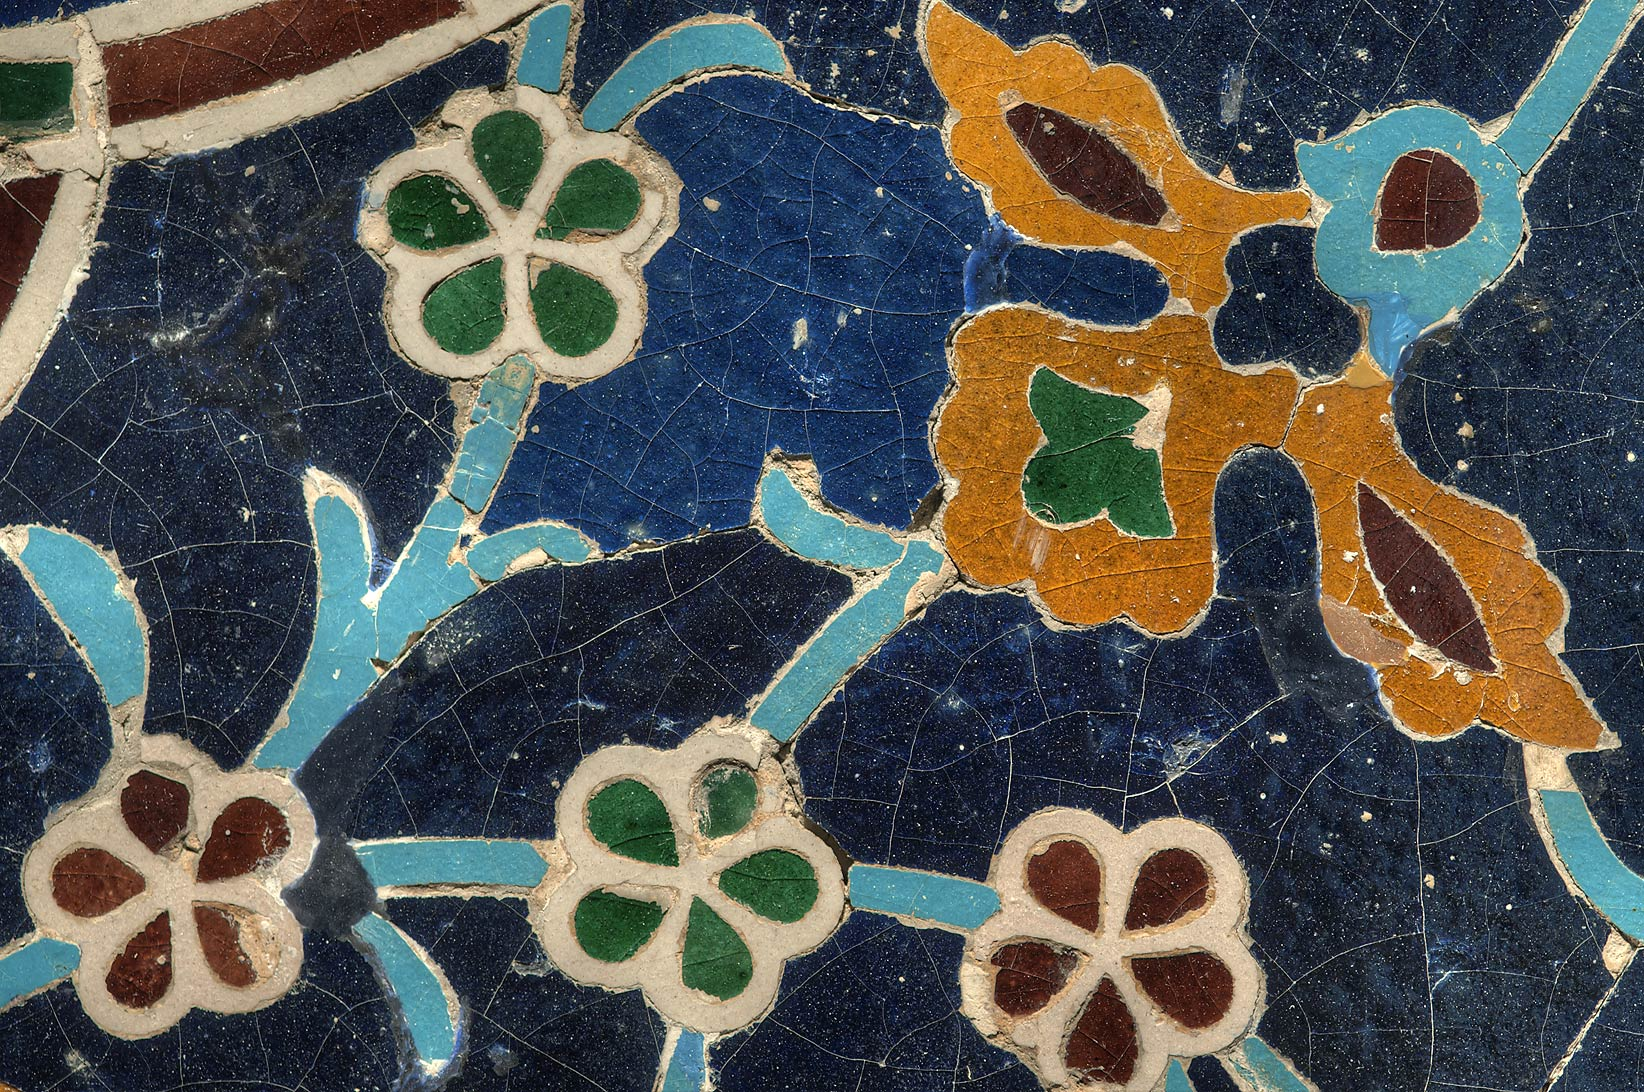 Mosaic tile from a panel fragment (15th century...in Museum of Islamic Art. Doha, Qatar